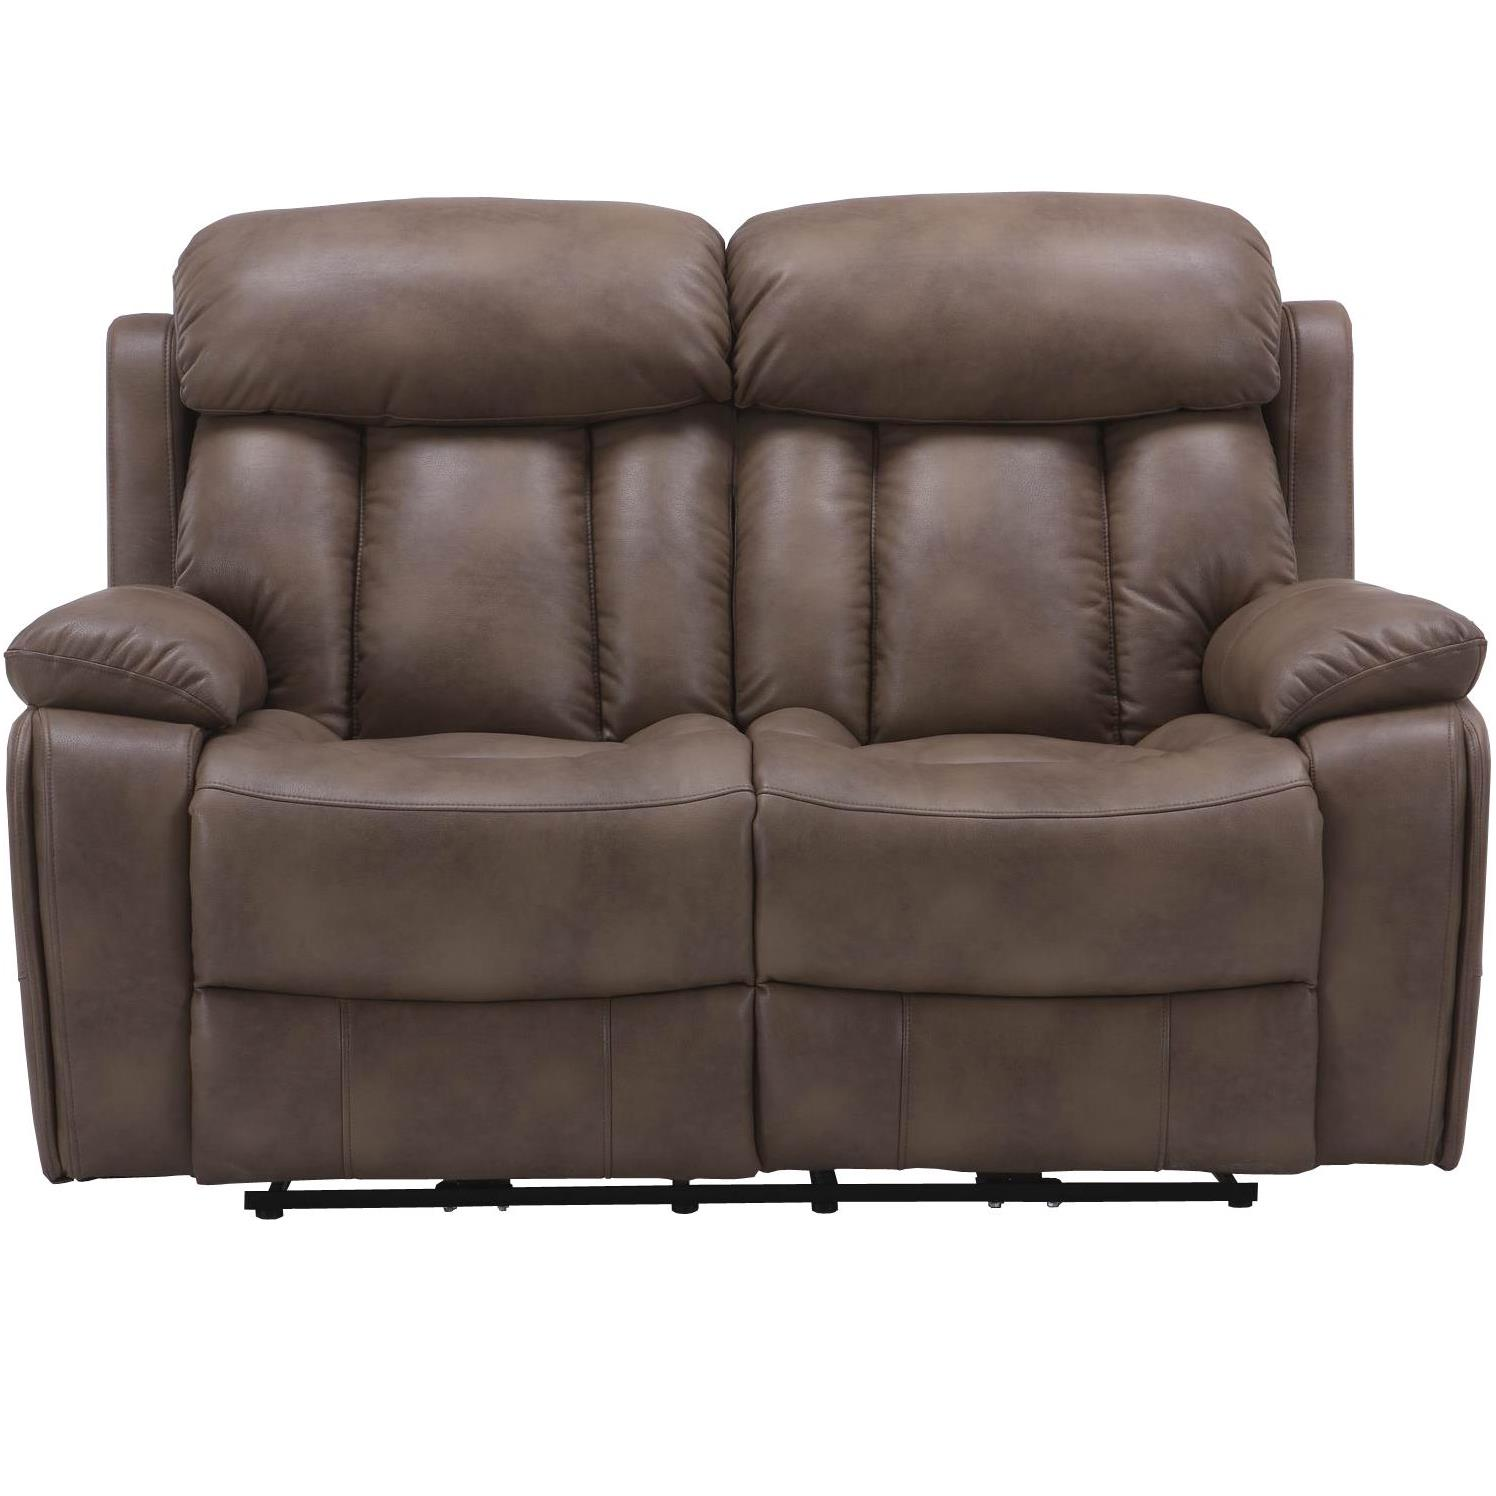 Parker Living Baron Casual Reclining Love Seat - Item Number: MBAR-822-BA